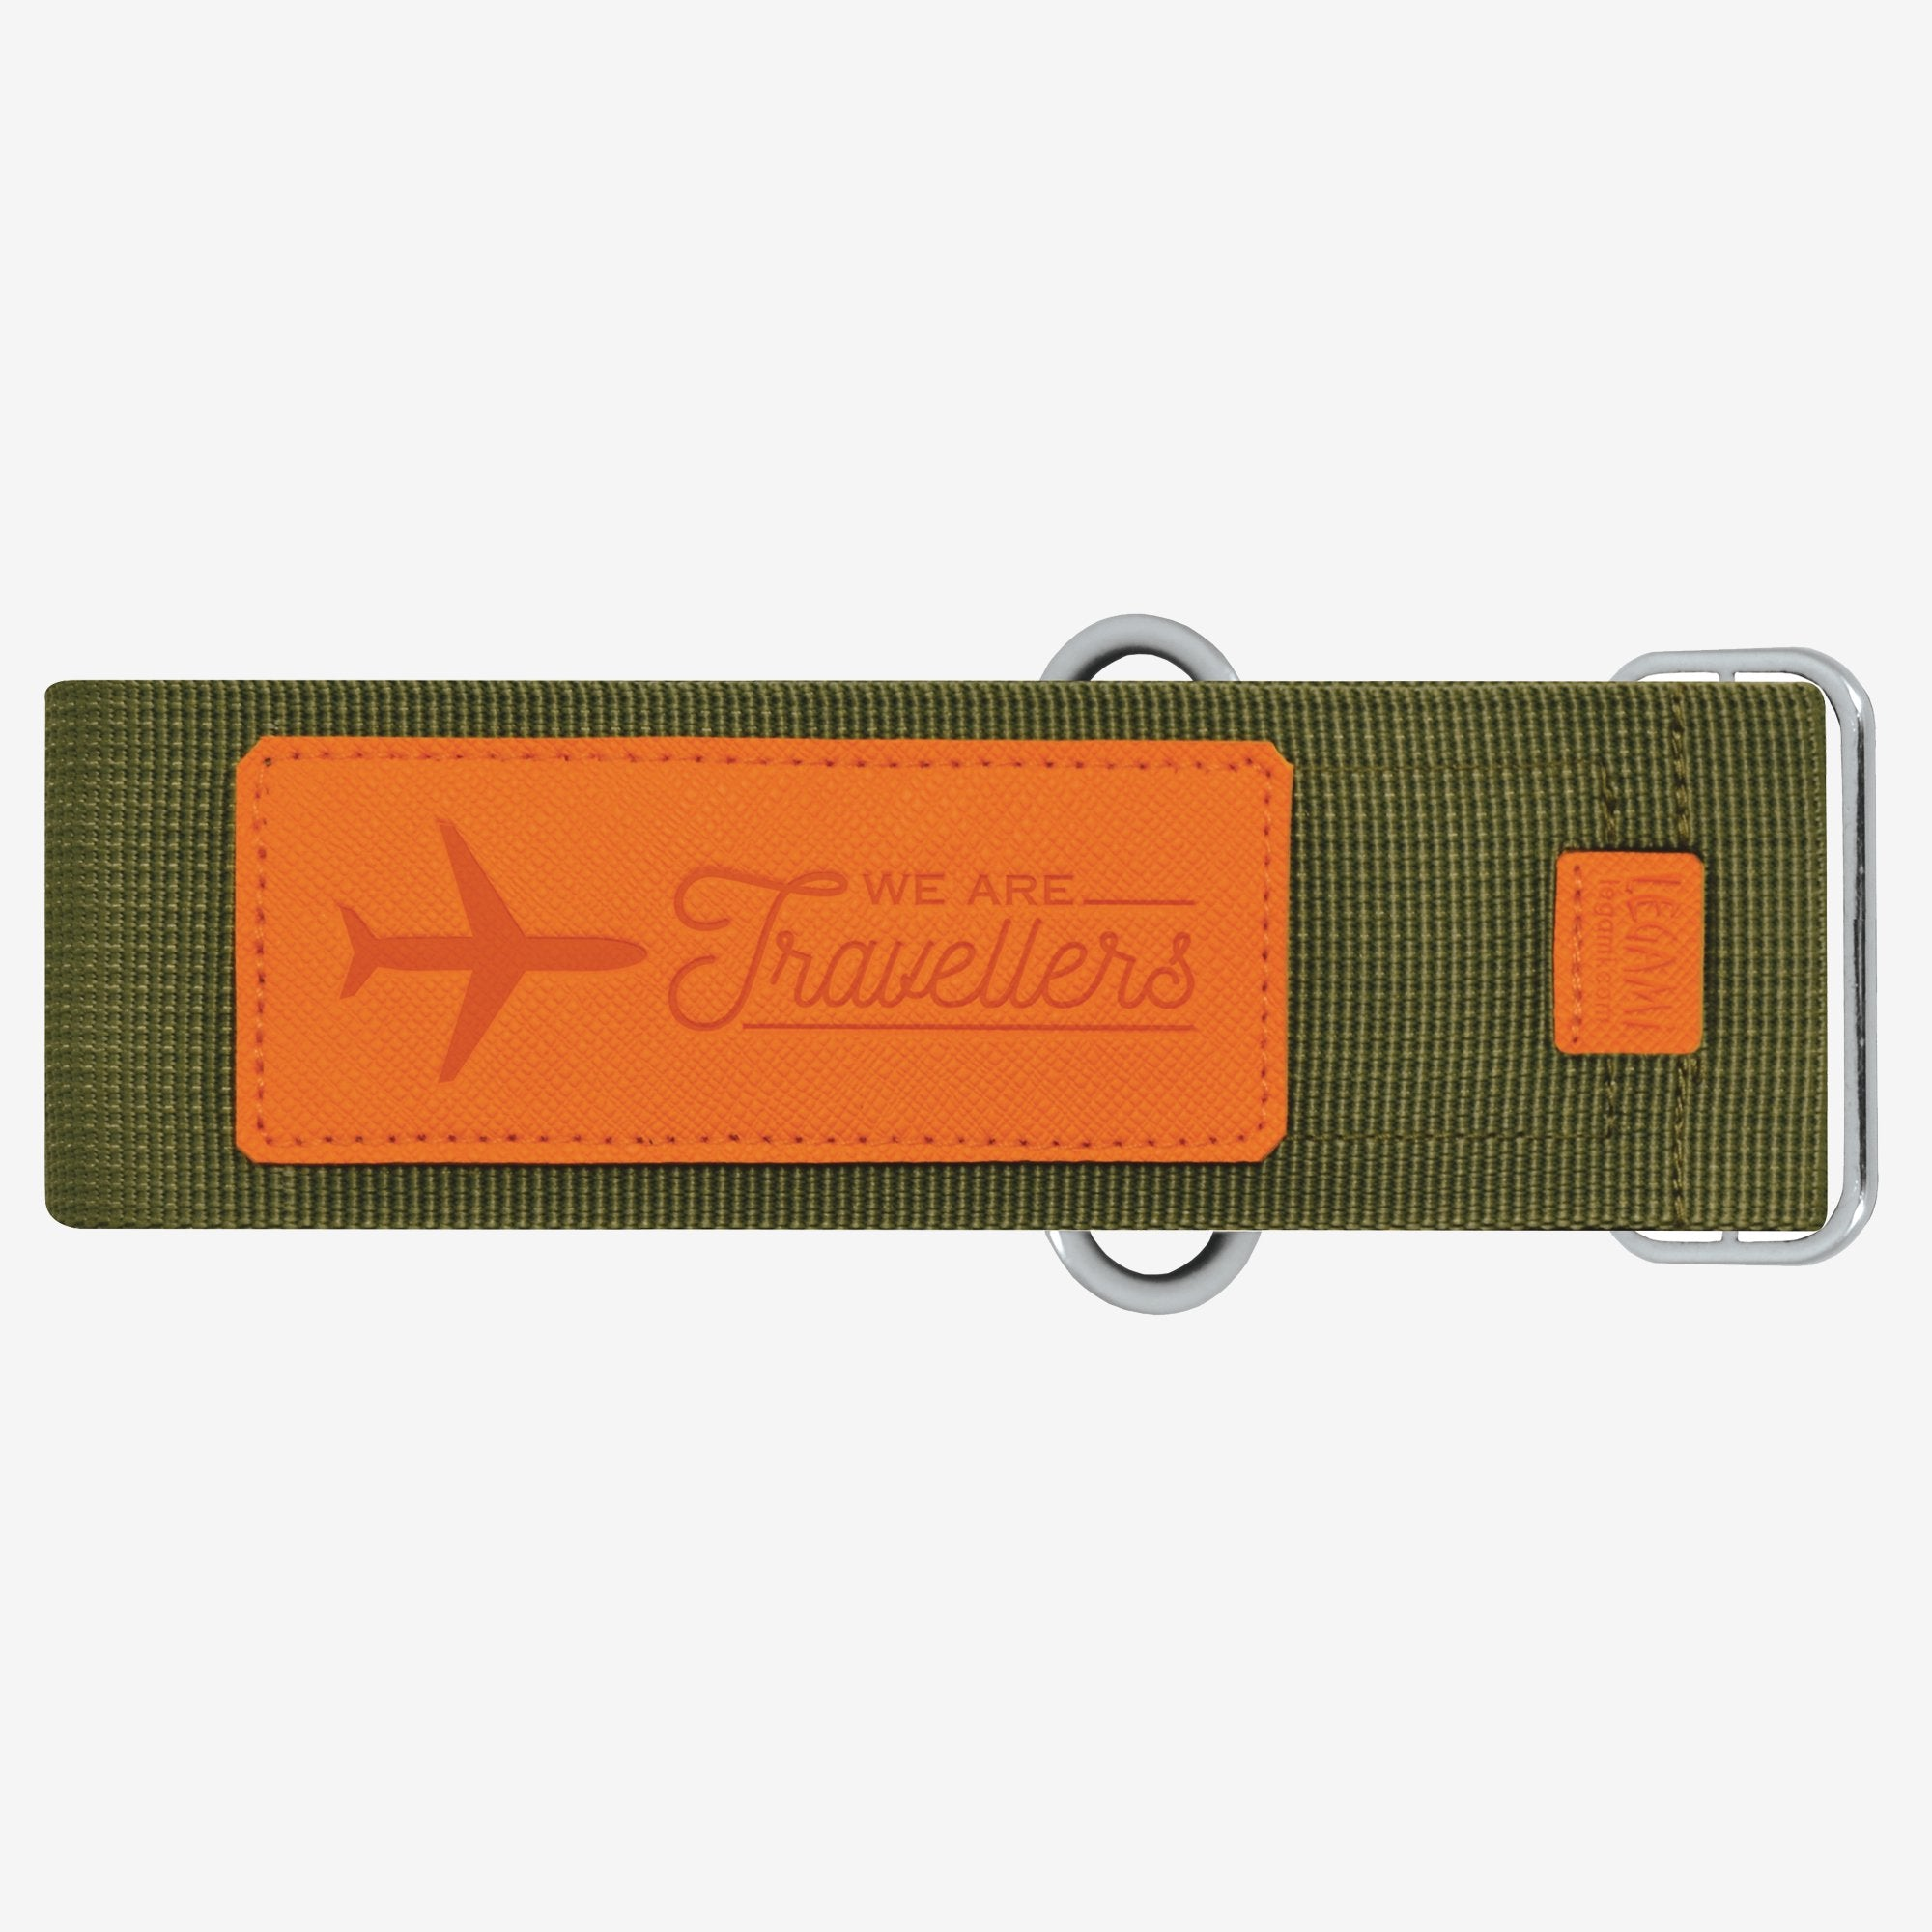 Luggage Strap - Khaki & Orange